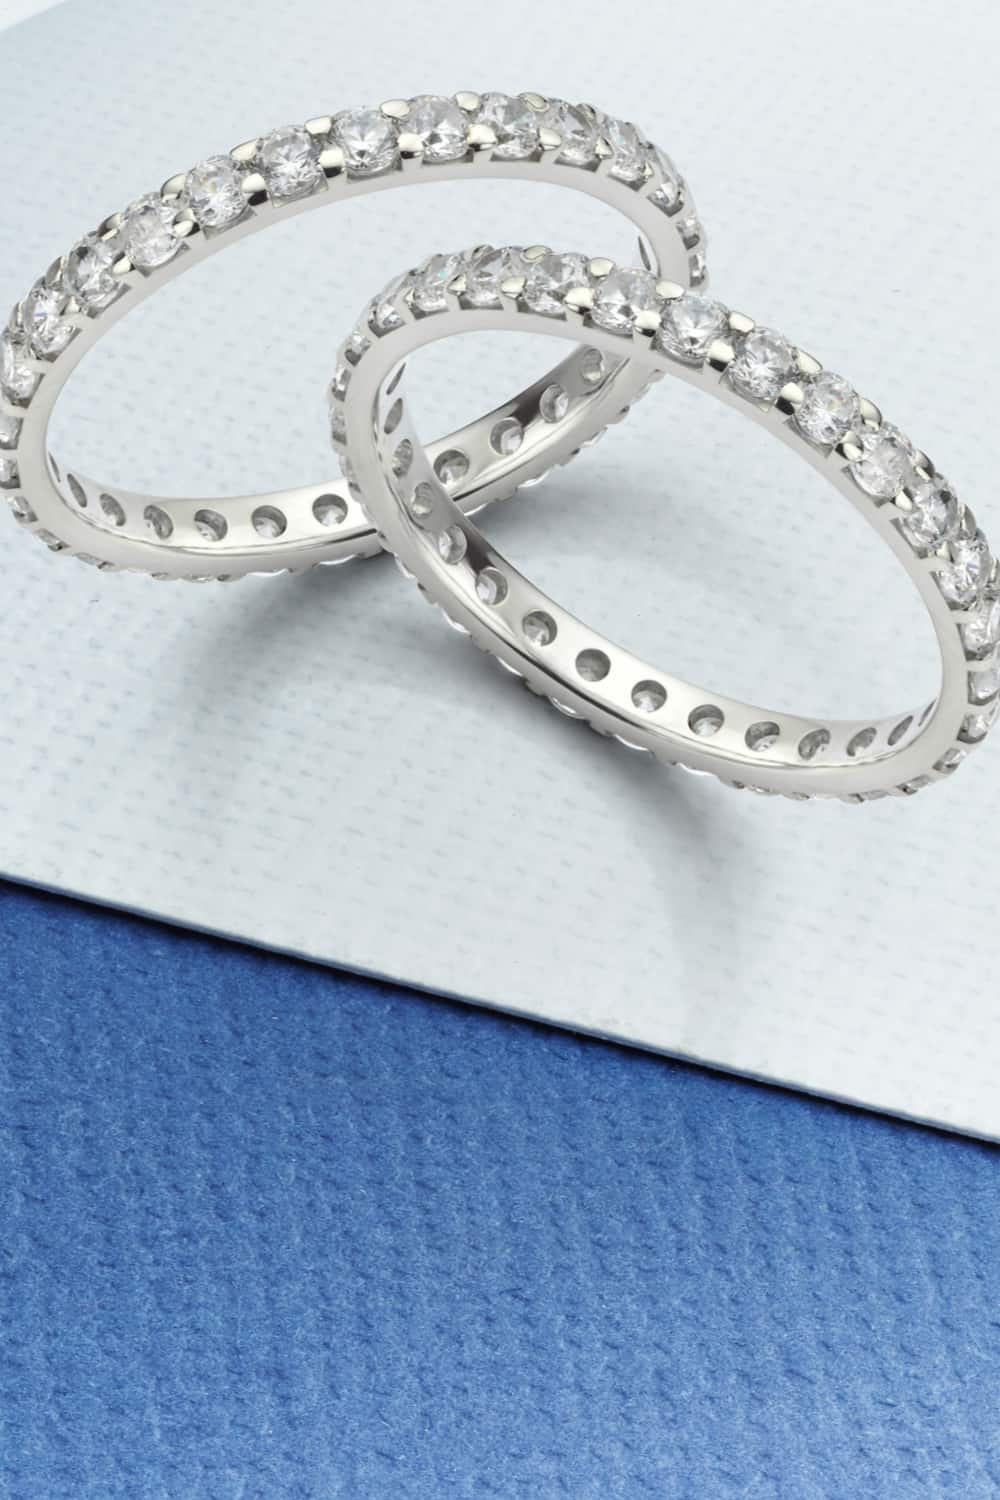 Rings You Can't Resize